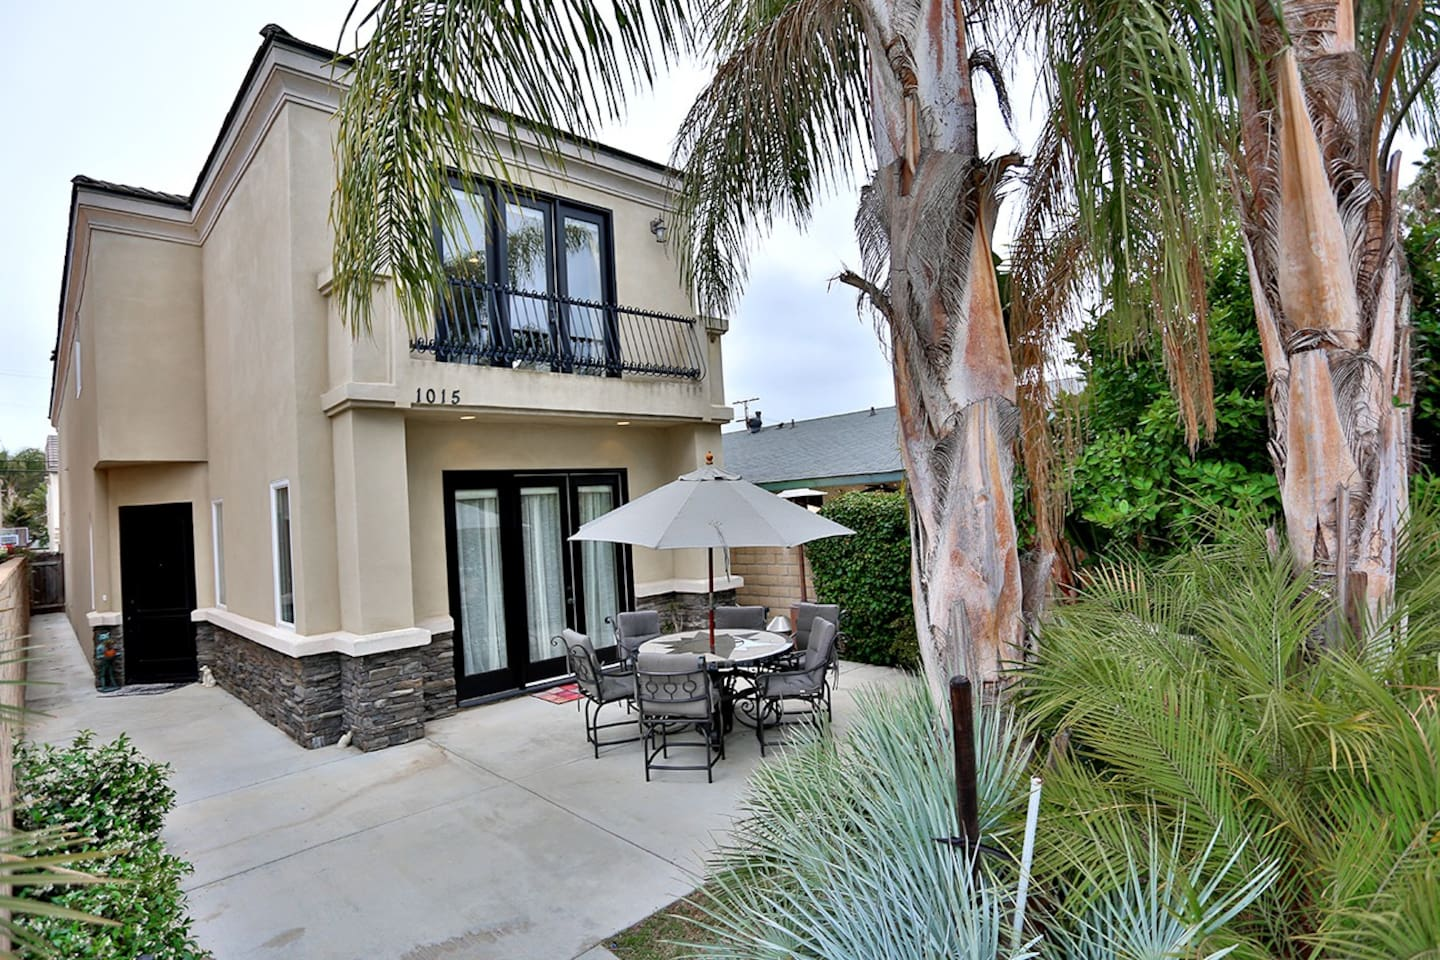 stunning vacation house near beach houses for rent in huntington